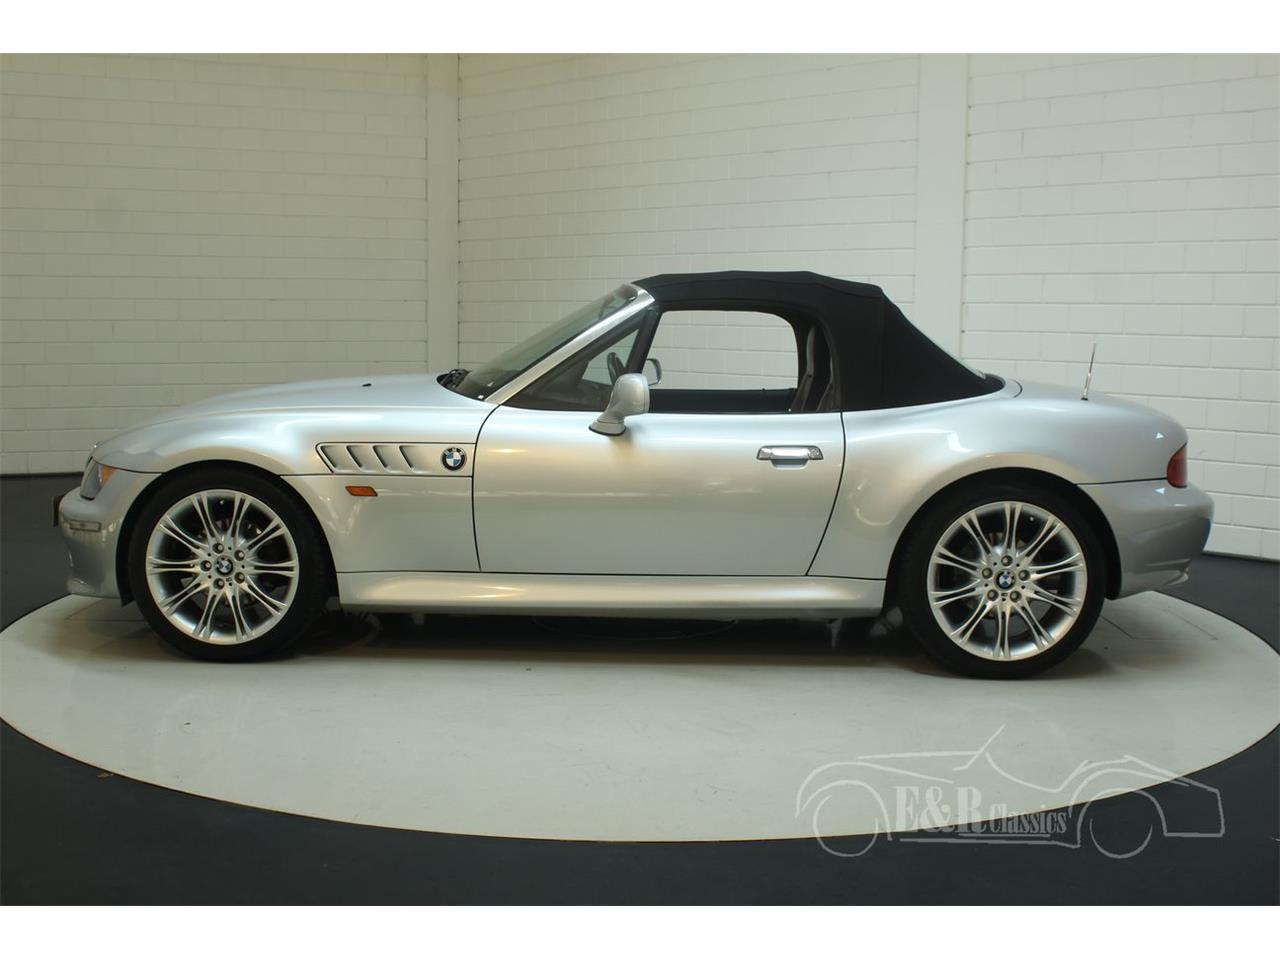 Large Picture of '01 BMW Z3 located in Noord-Brabant - $19,150.00 - PNX1